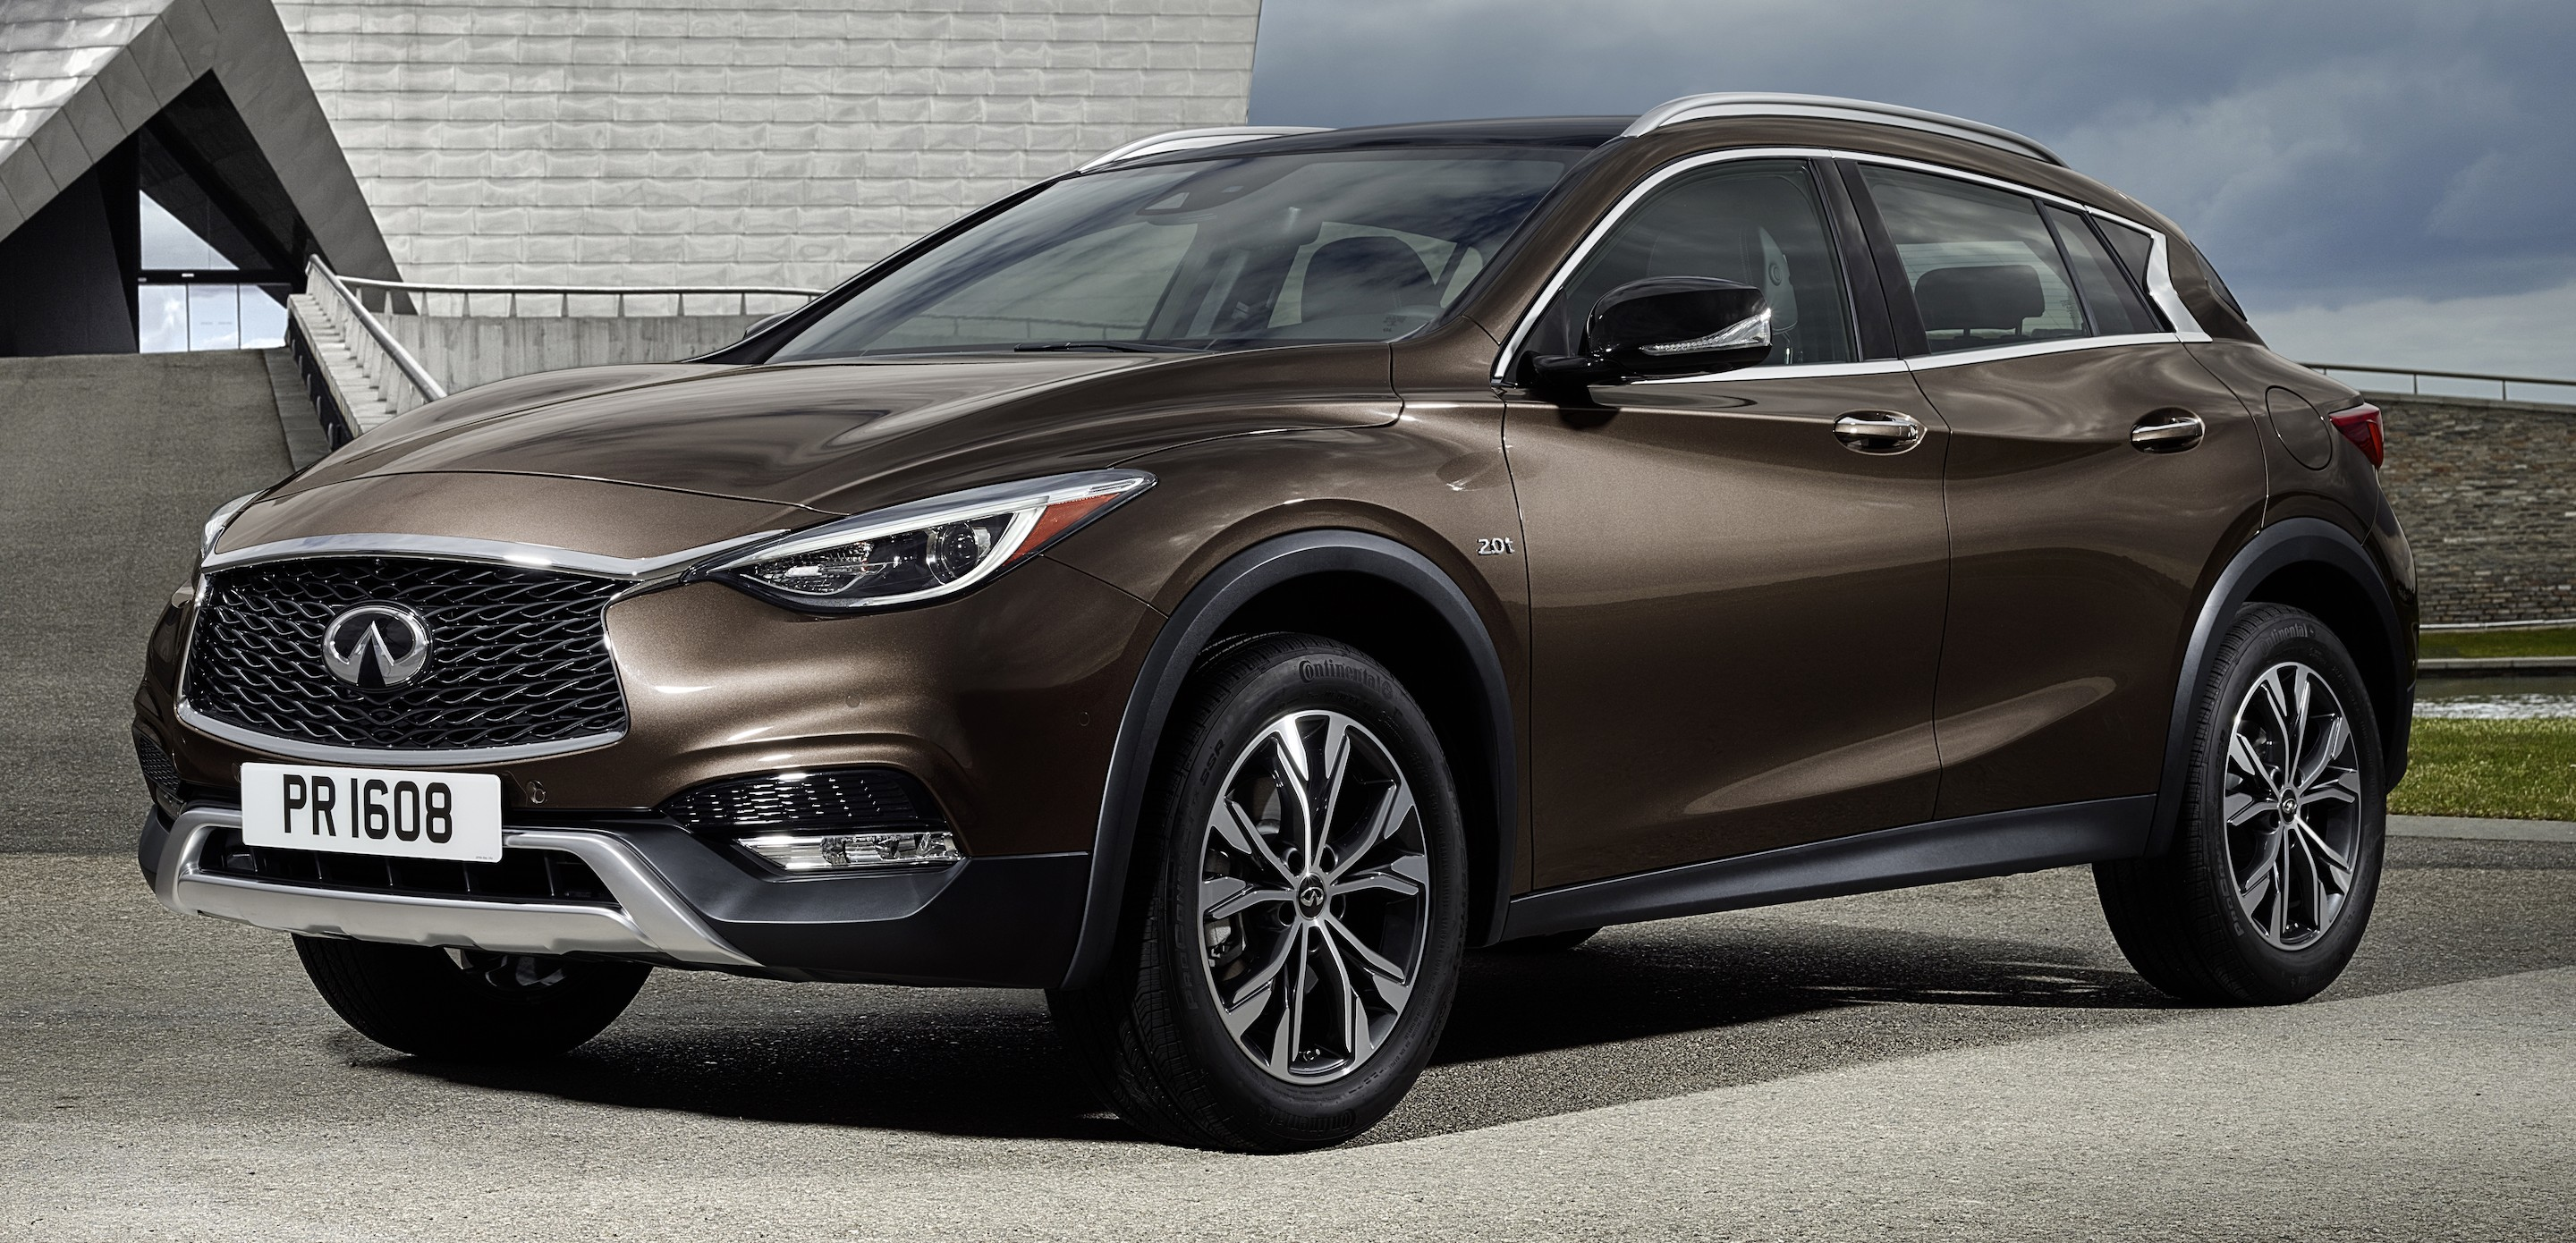 infiniti qx30 premium compact crossover revealed. Black Bedroom Furniture Sets. Home Design Ideas